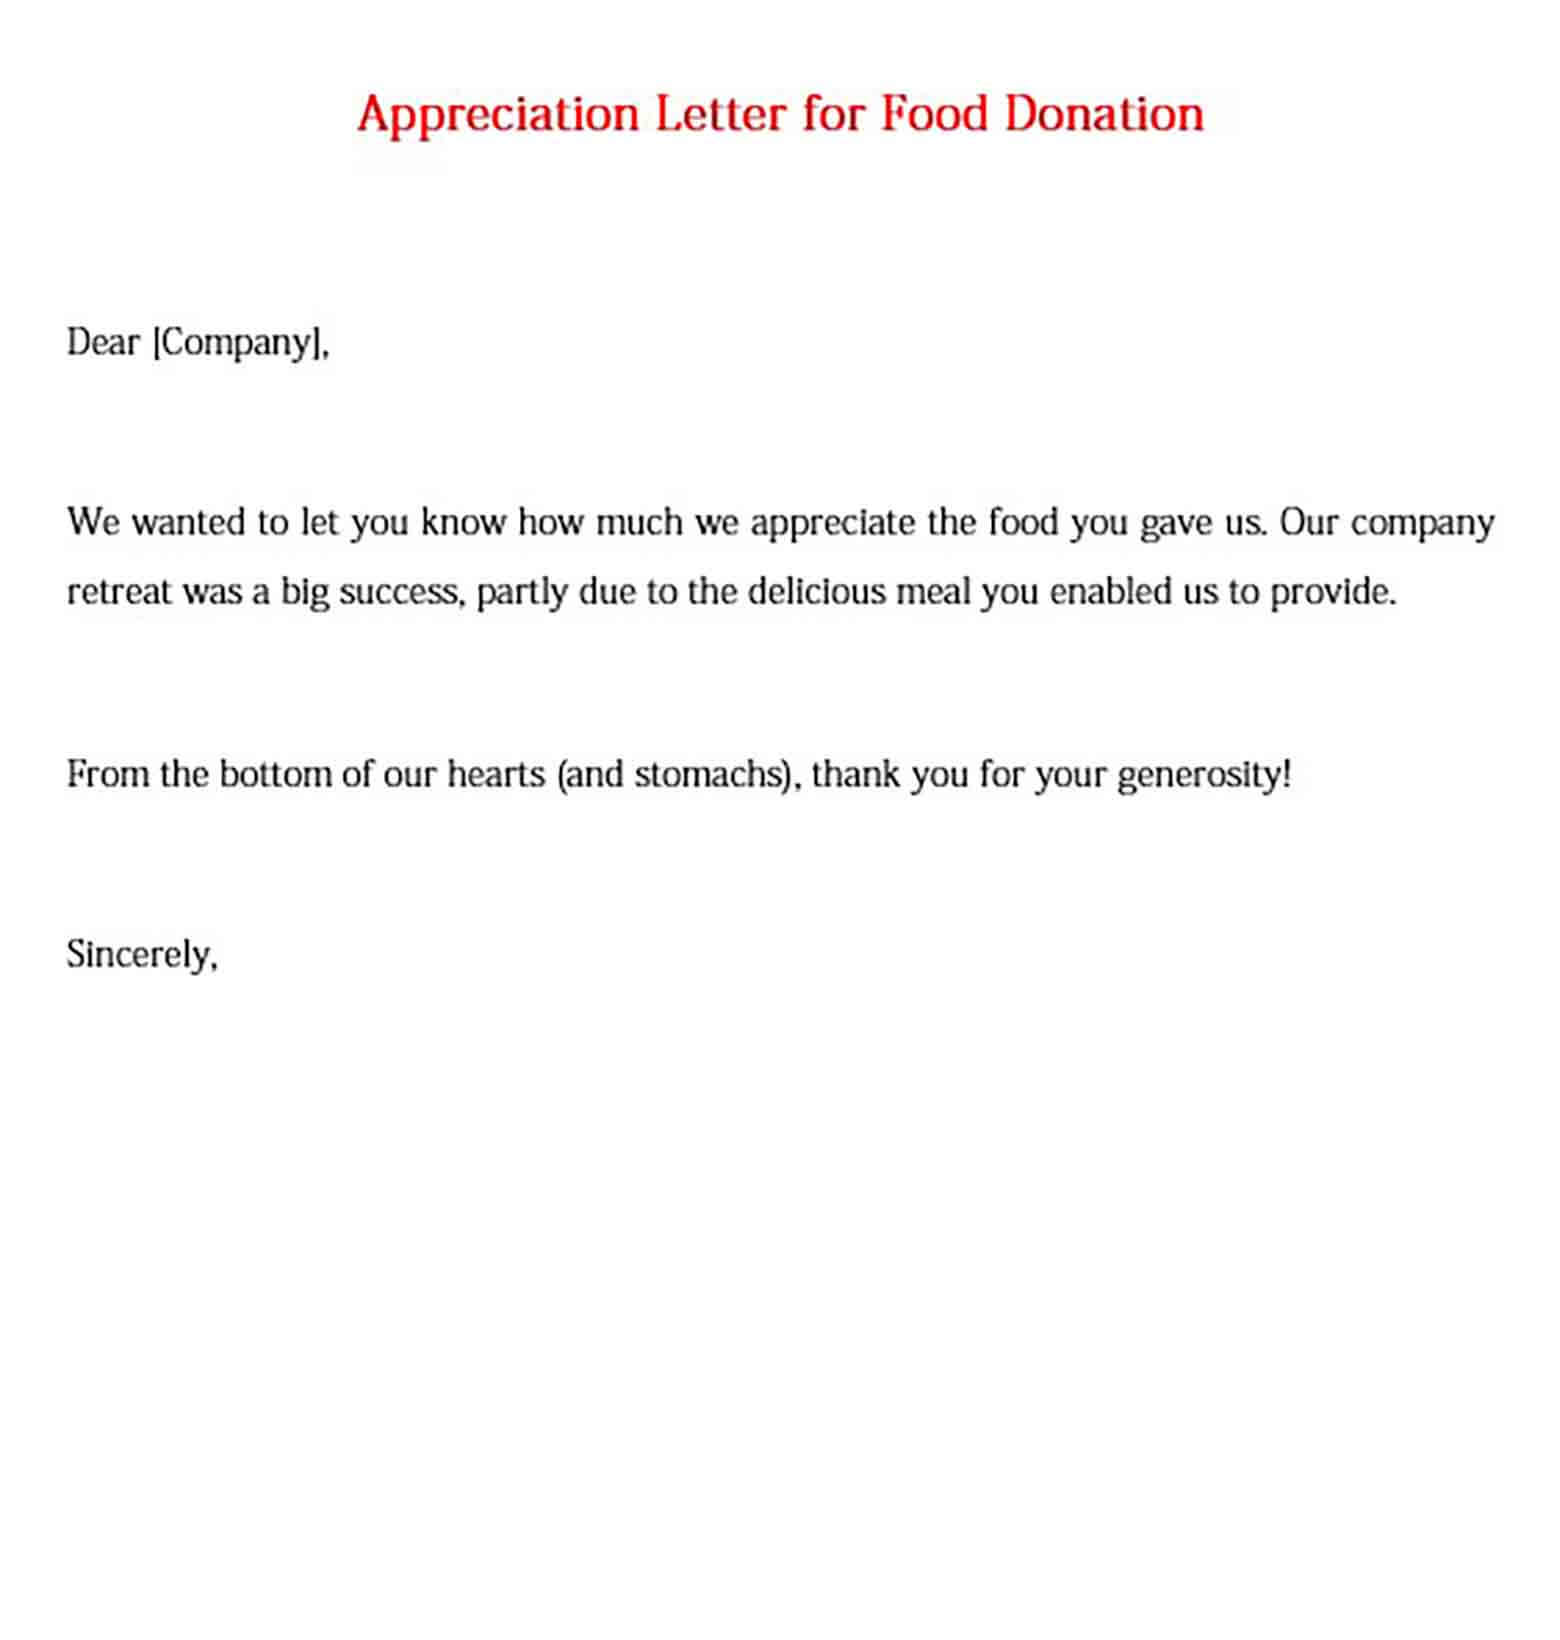 Appreciation Letter for Food Donation